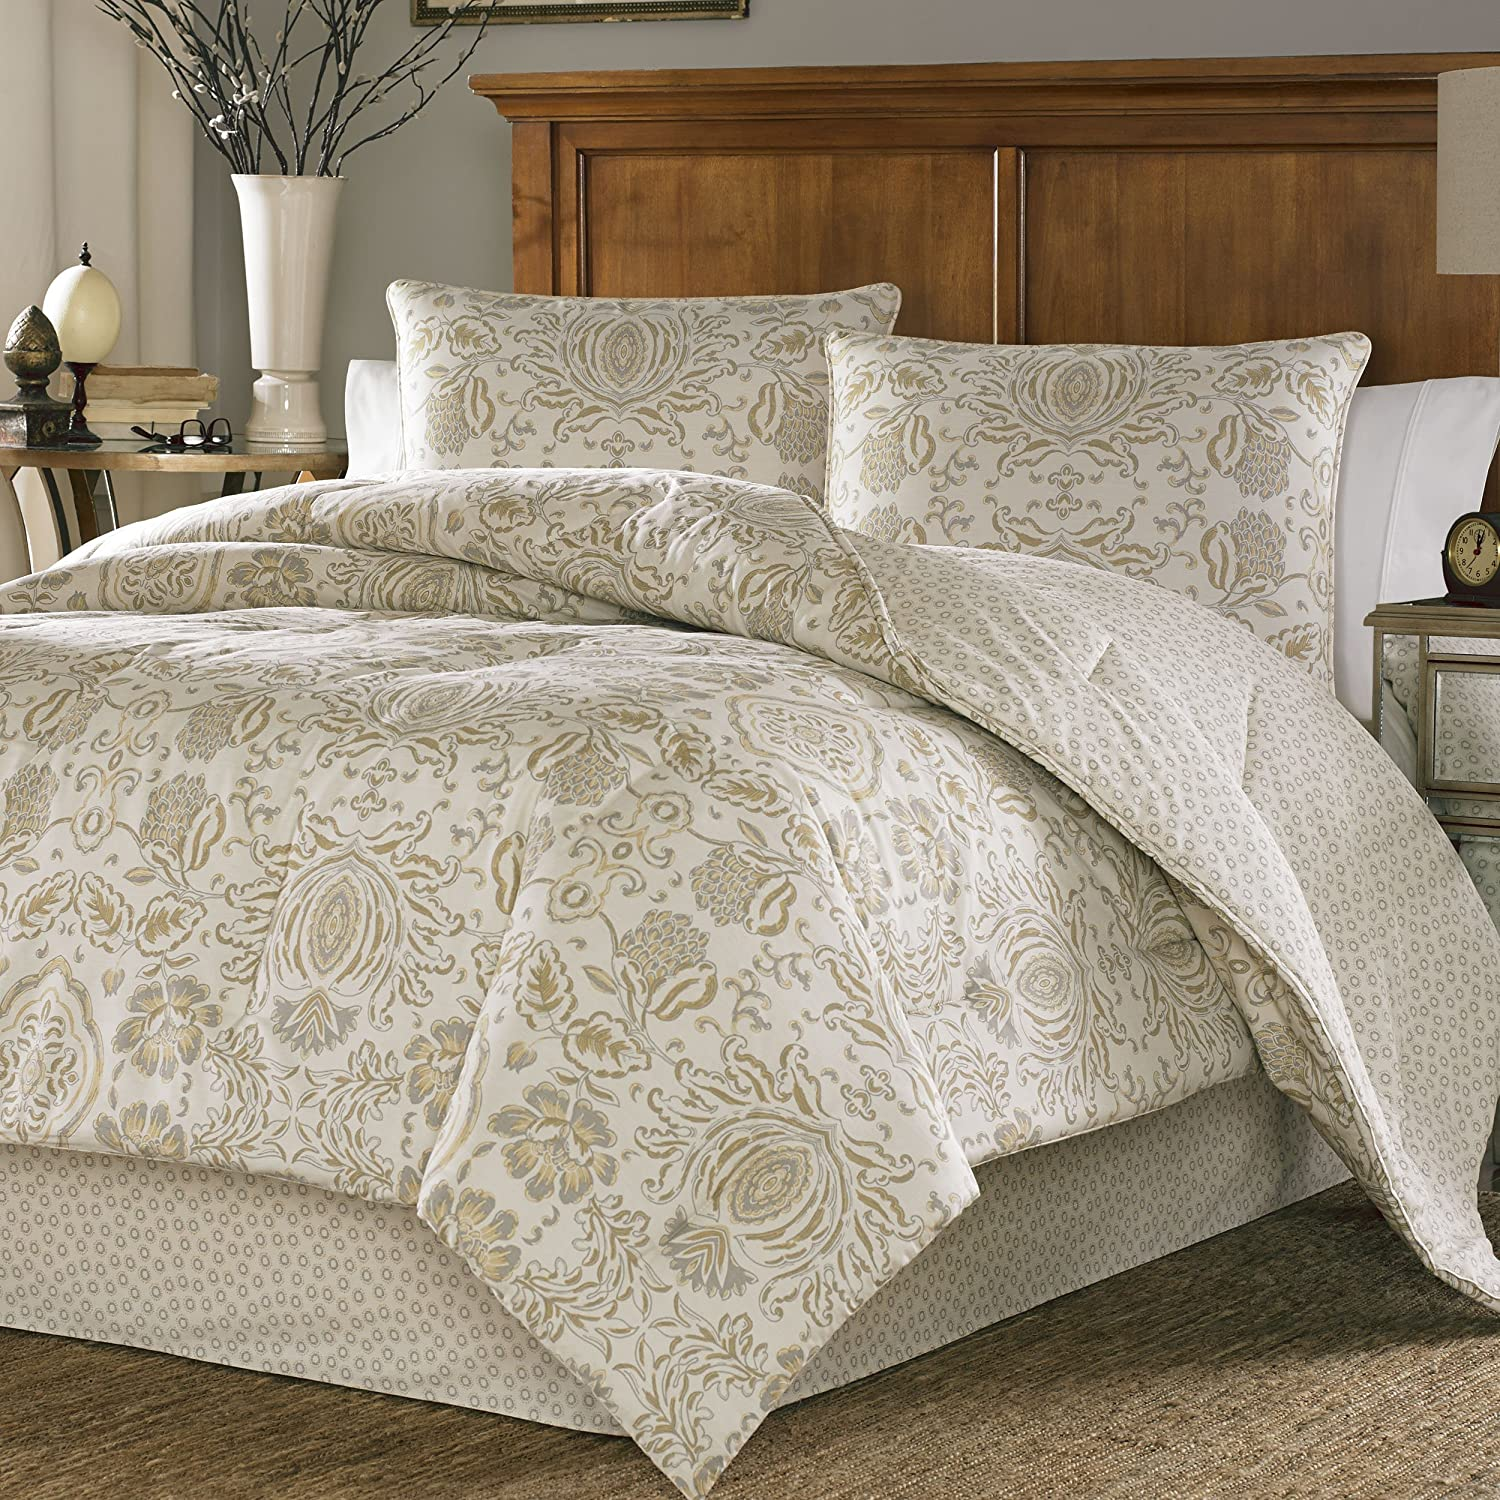 living comforter biolan king treasures product set com piece scott or page sateen qvc